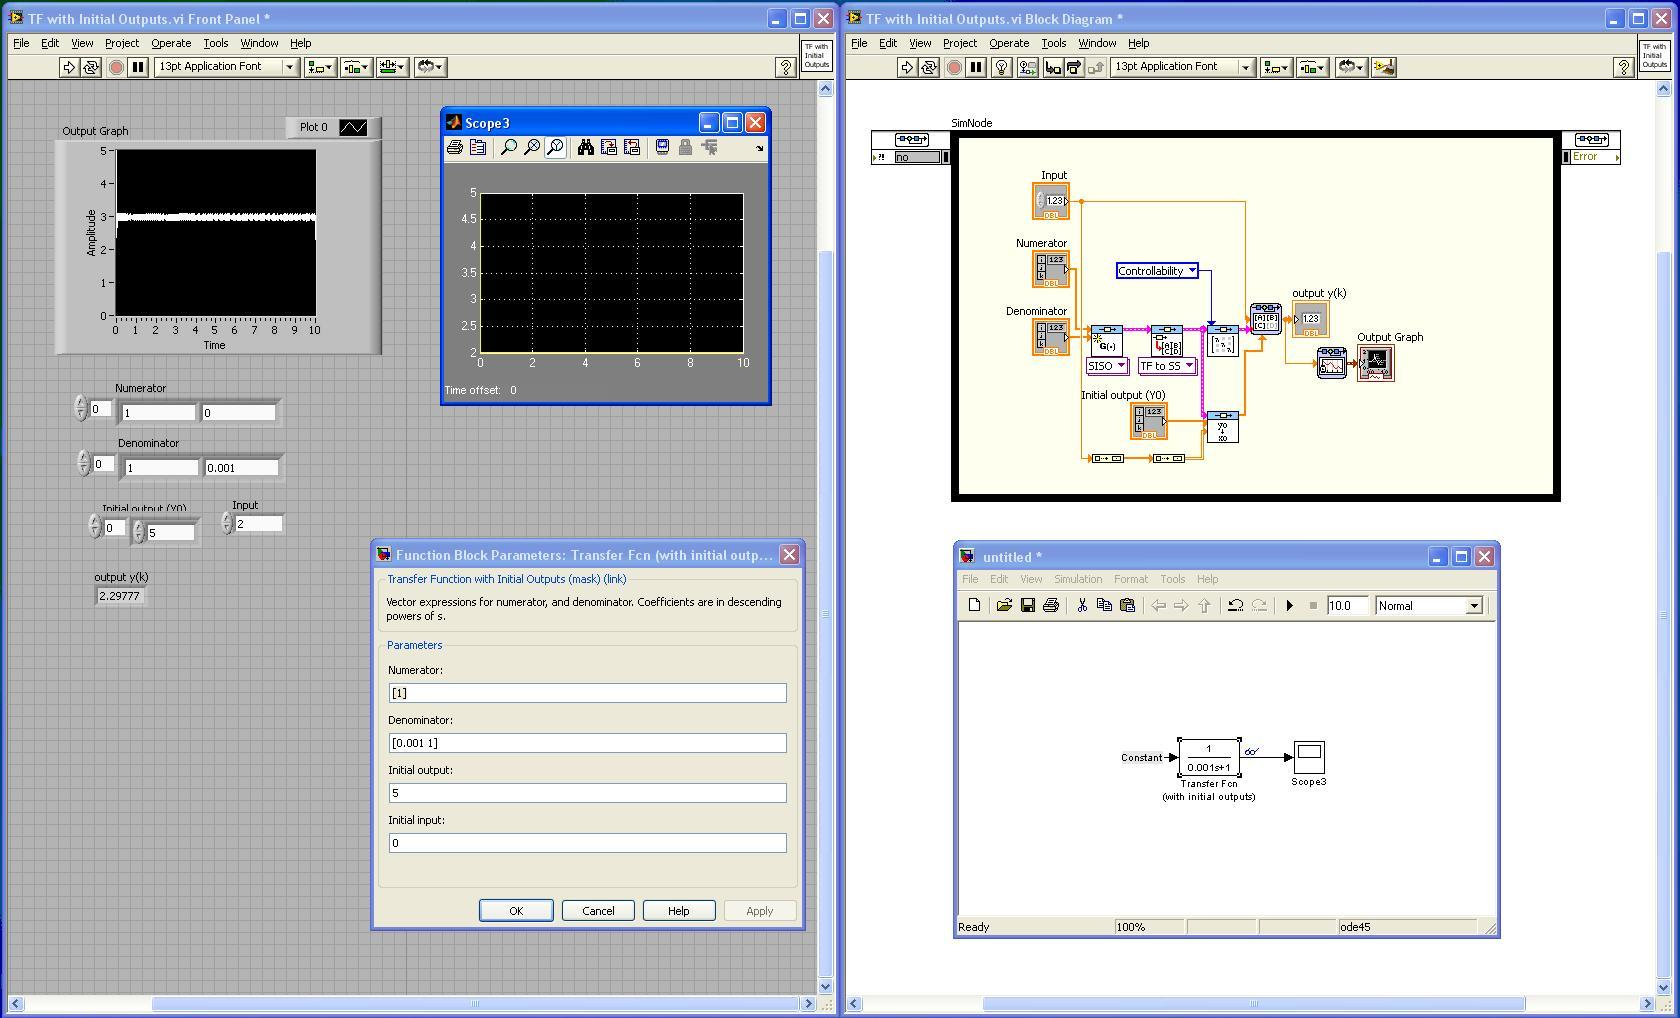 Converting Transfer Function with Initial Outputs in Simulink to